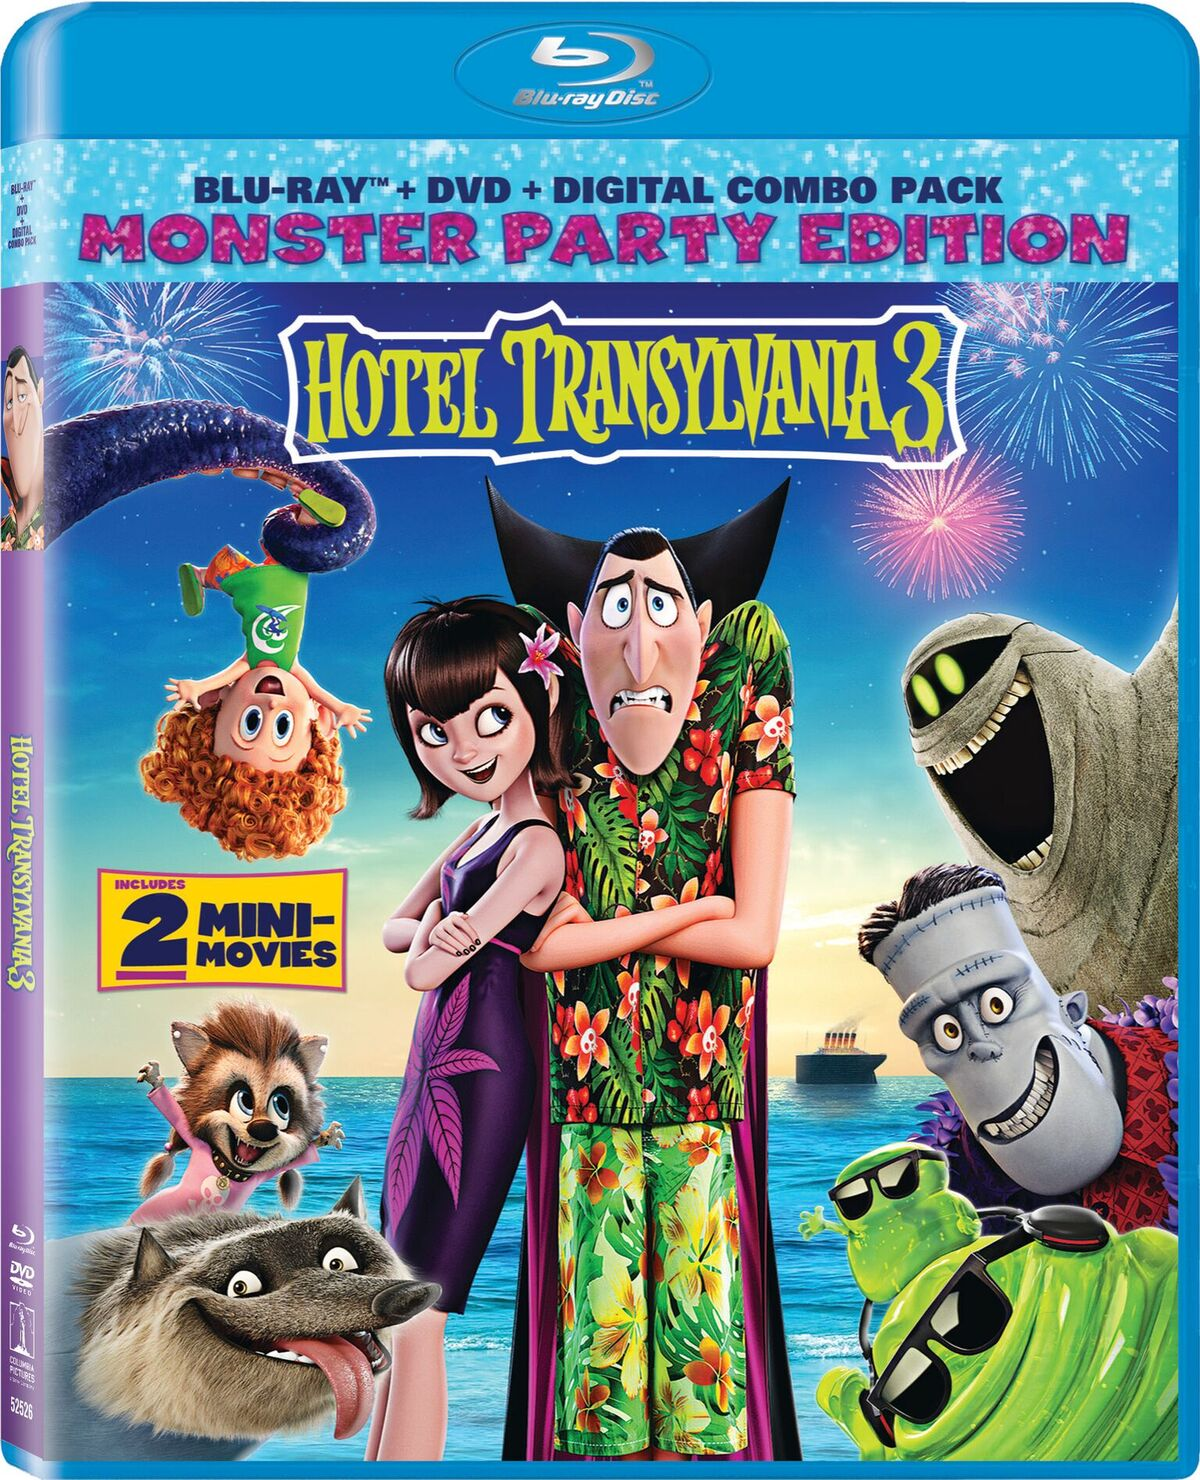 hotel transylvania out on DCD